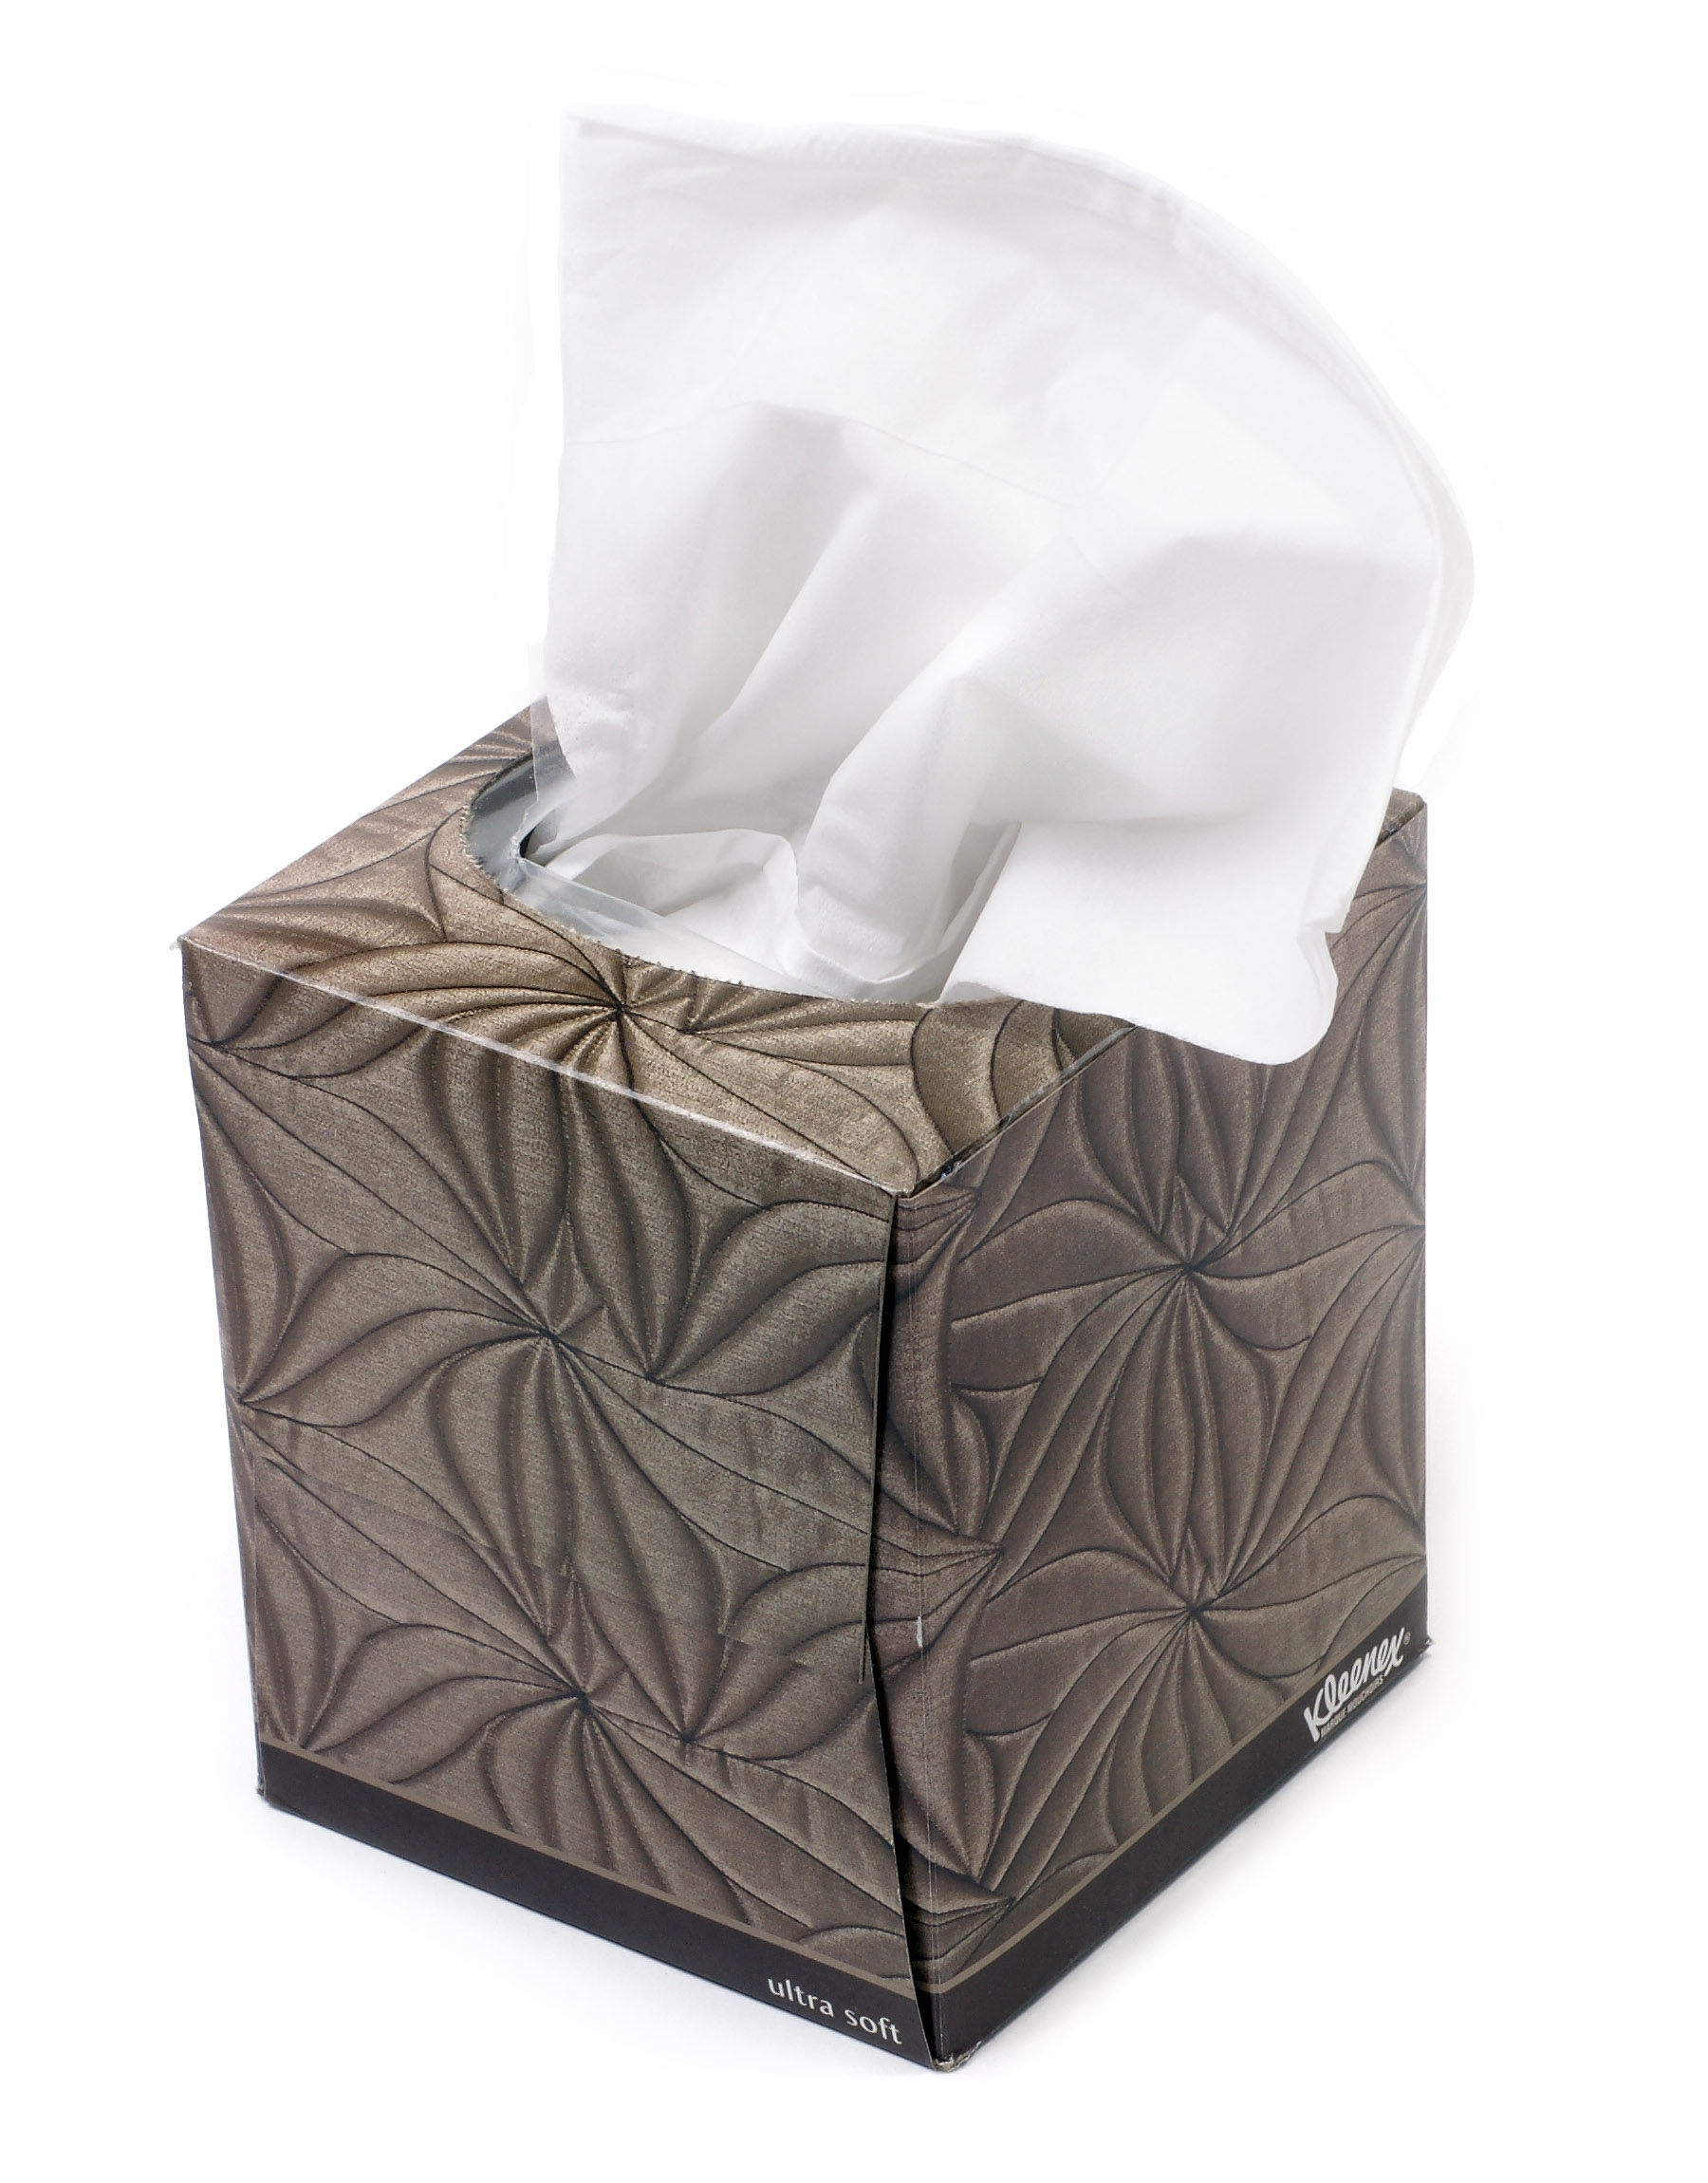 https://upload.wikimedia.org/wikipedia/commons/c/c1/Kleenex-small-box.jpg